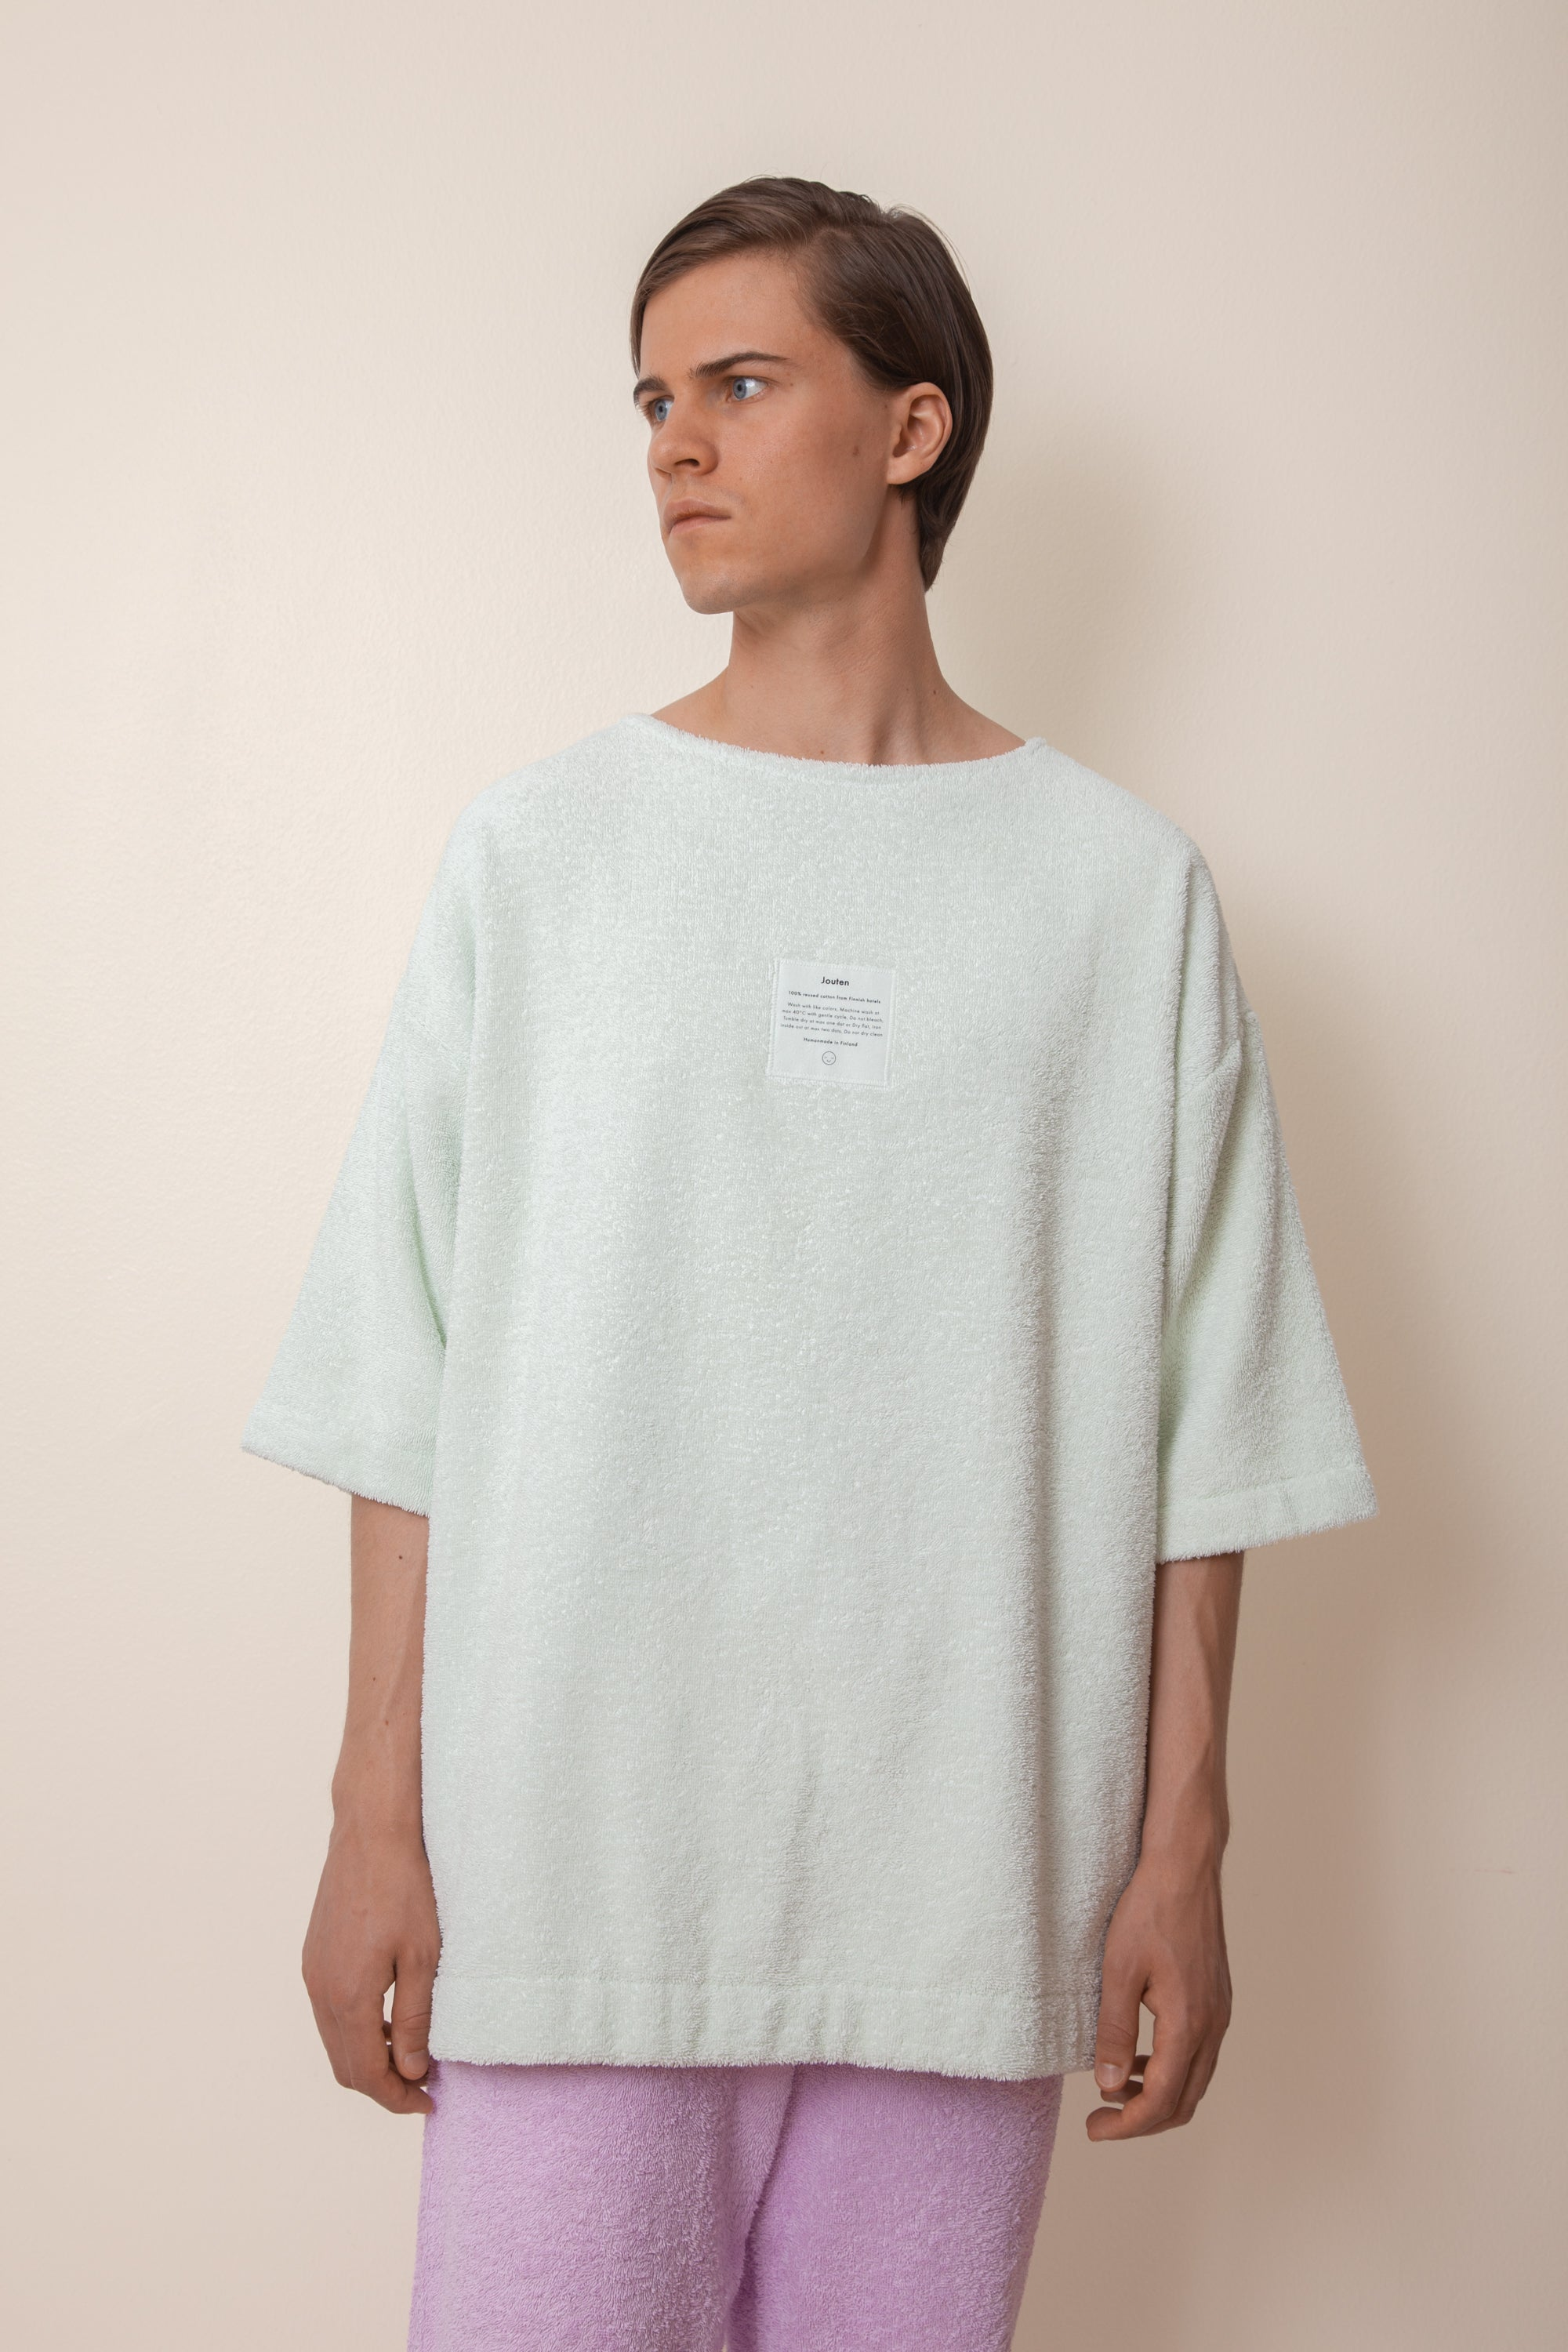 Unisex Terry Half Sleeve in Ice Mint